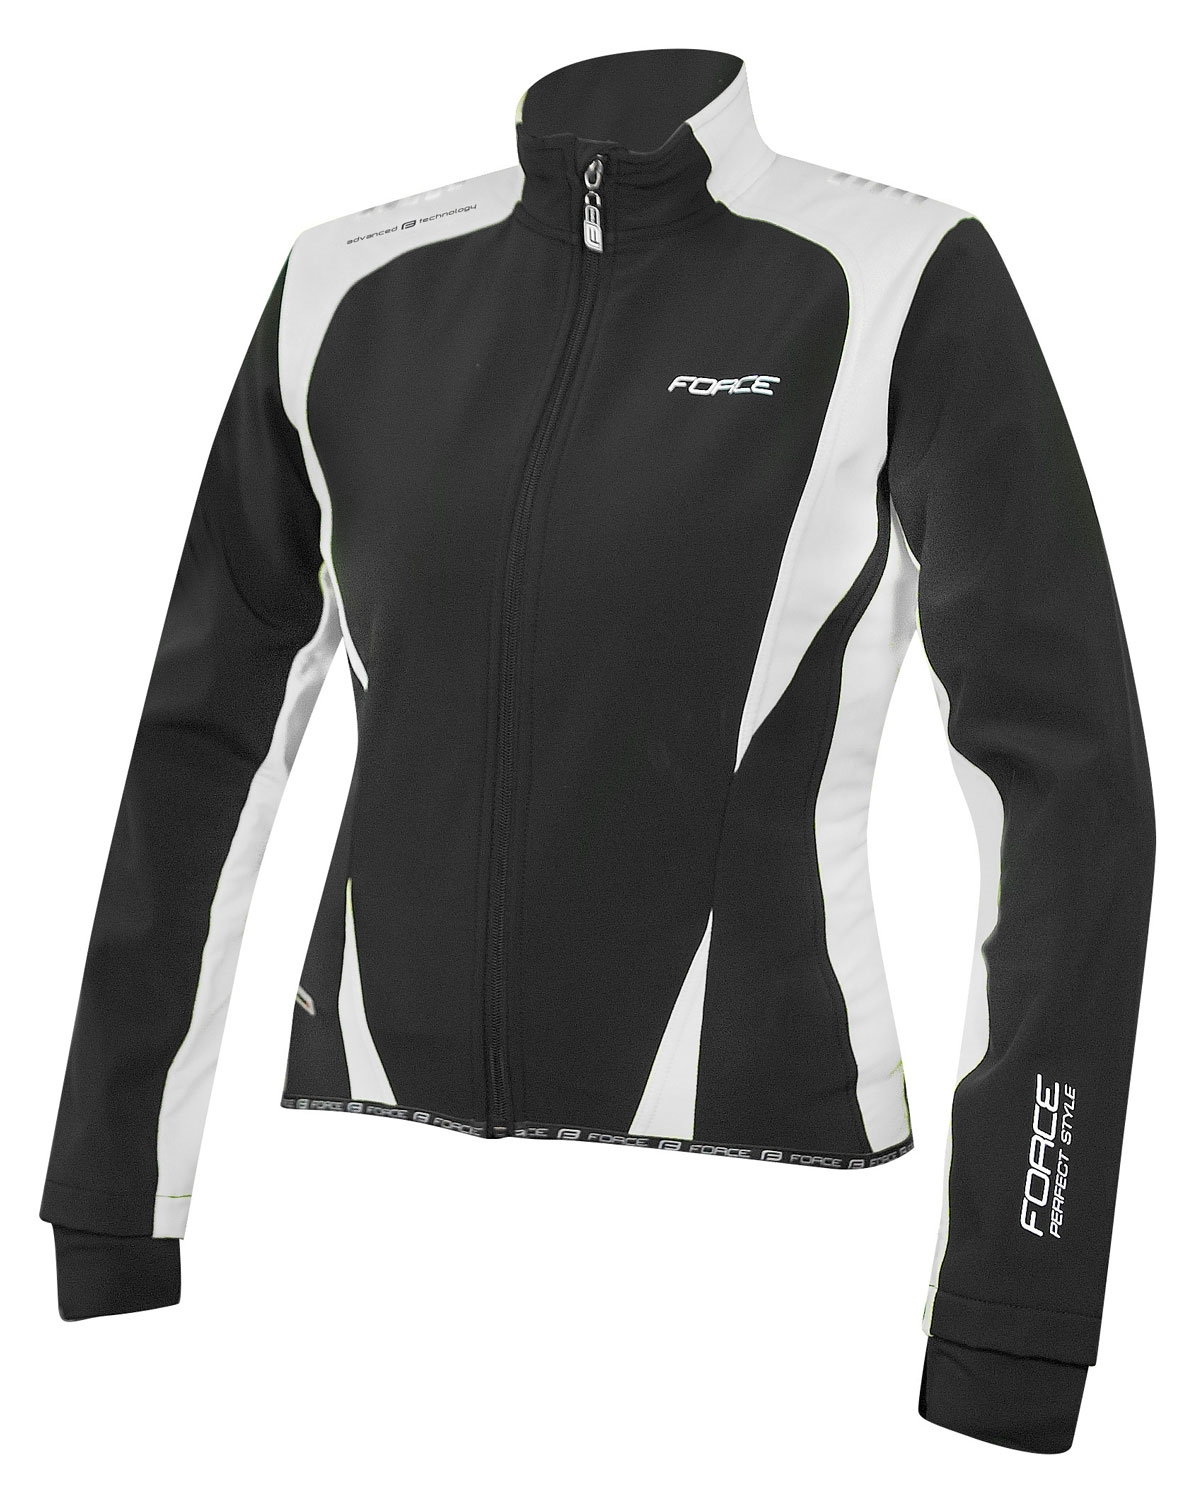 bunda FORCE X71 LADY softshell, černo-bílá XL